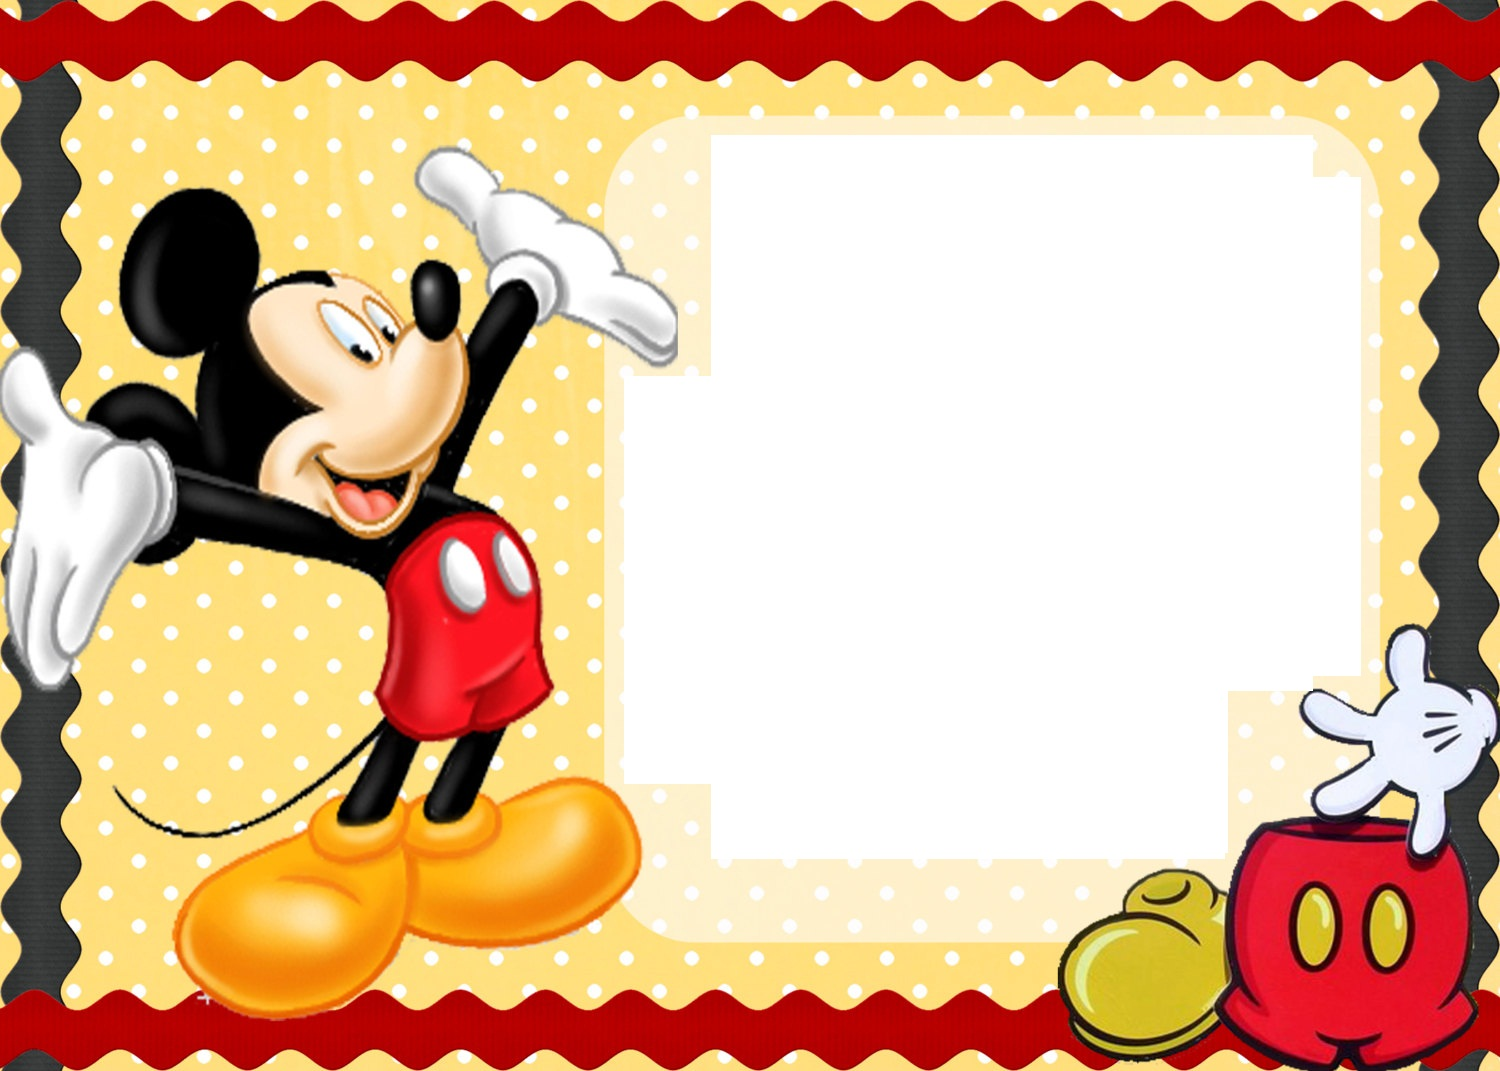 Mickey Mouse Frame Wallpapers High Quality Download Free